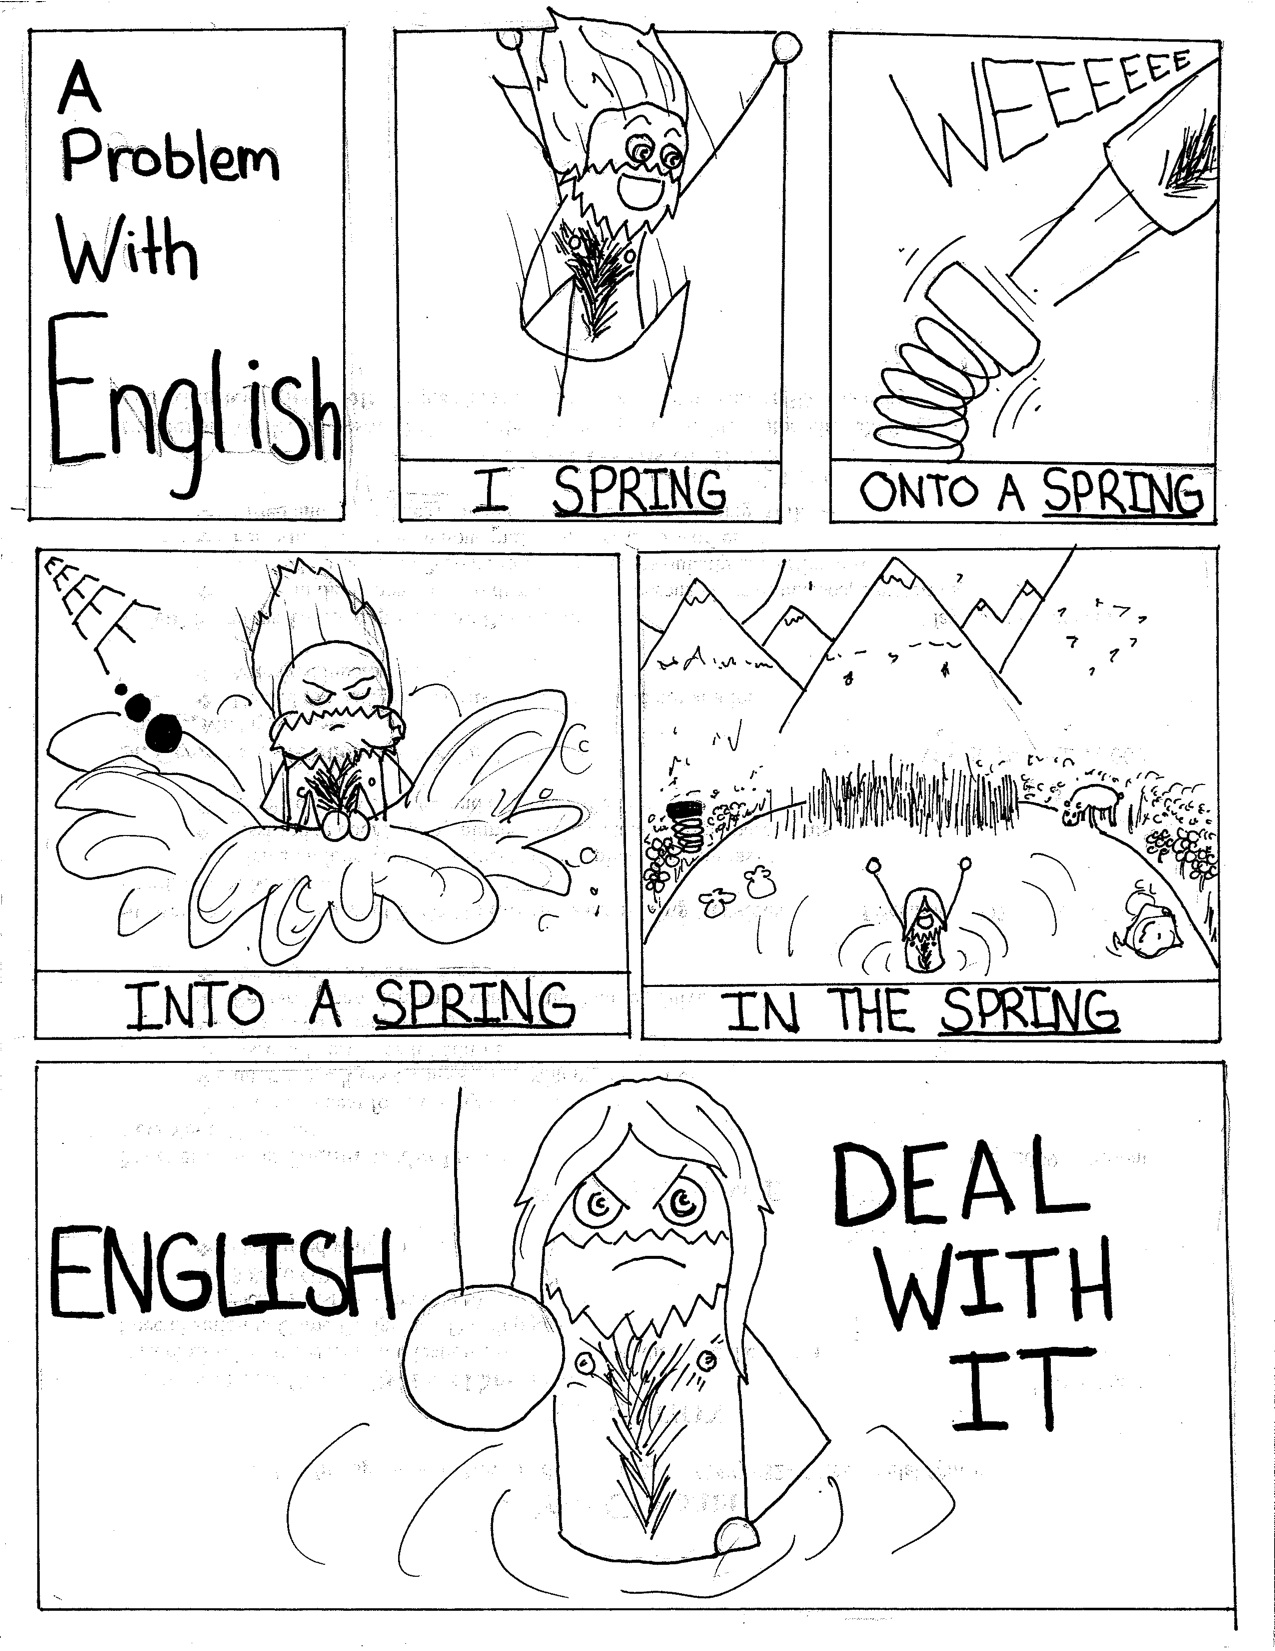 Weekly Comics A Problem With English